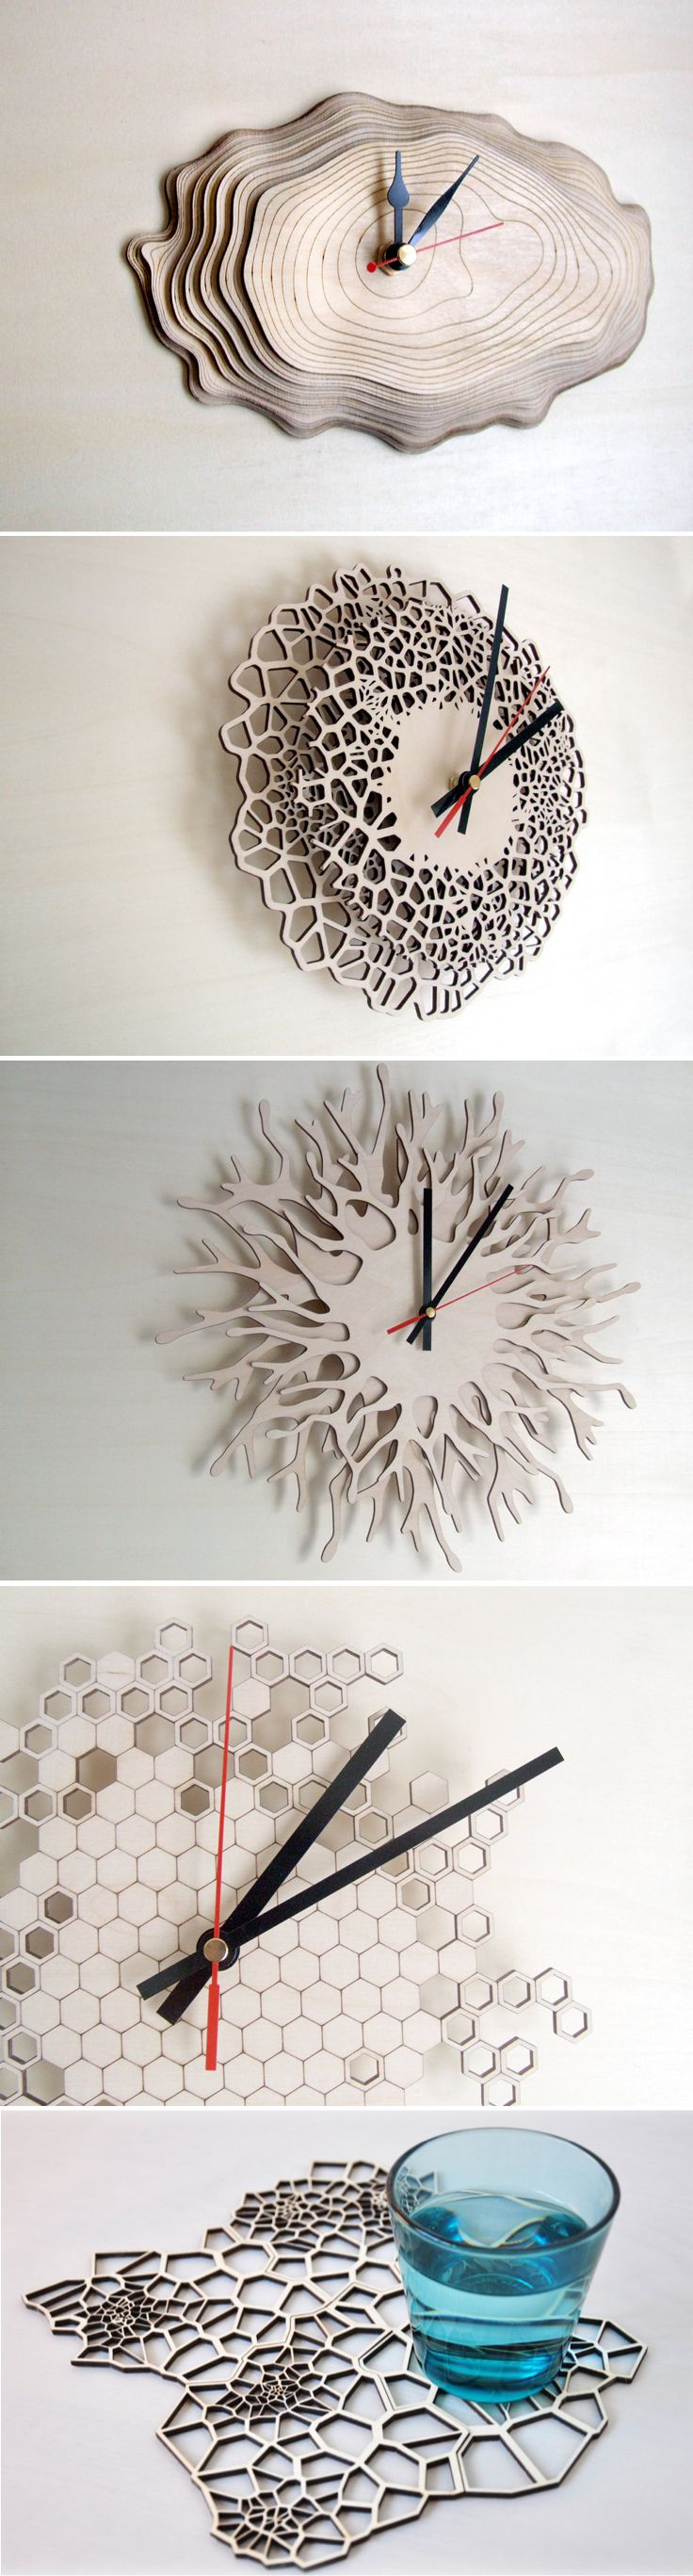 Asymmetree Nature-Inspired Wood Clocks                                                                                                                                                      More